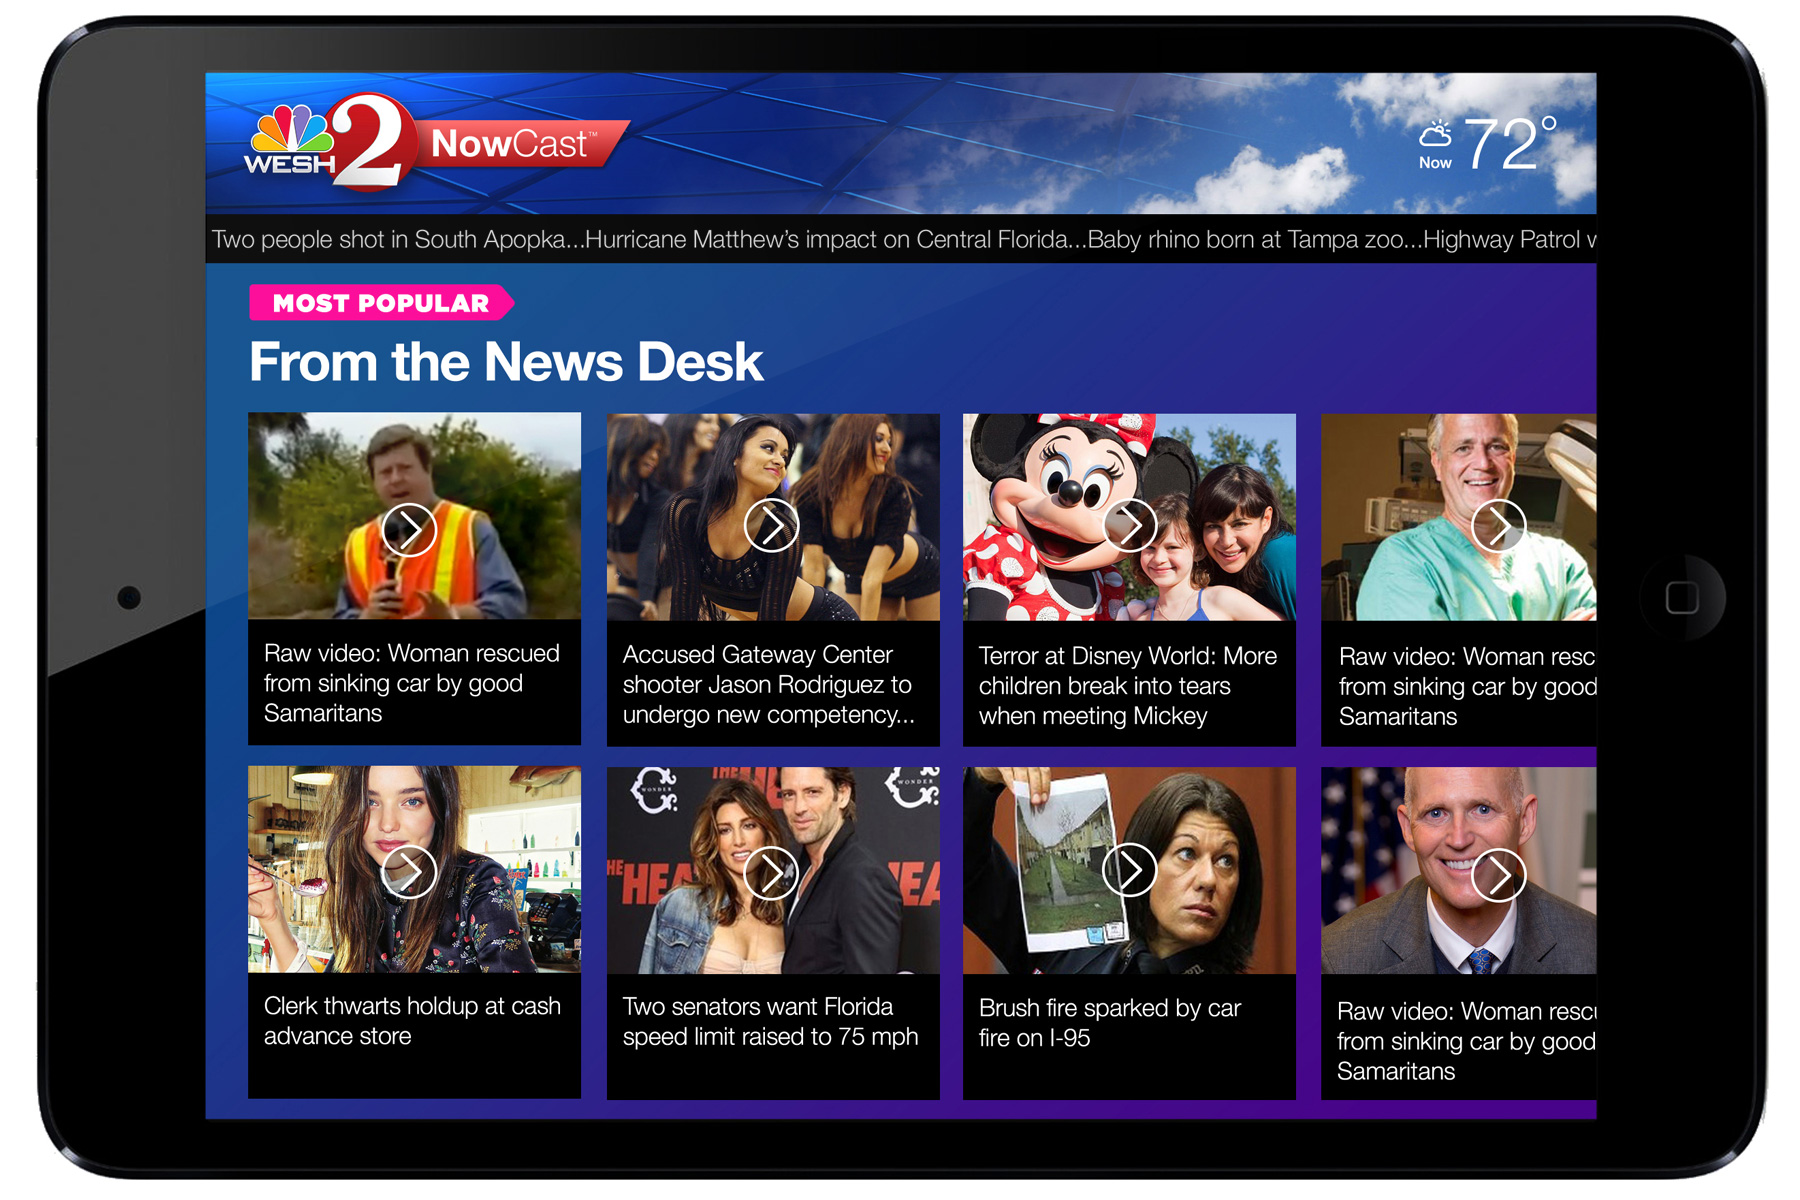 News Desk    module allows user to stream any story from past week on demand.